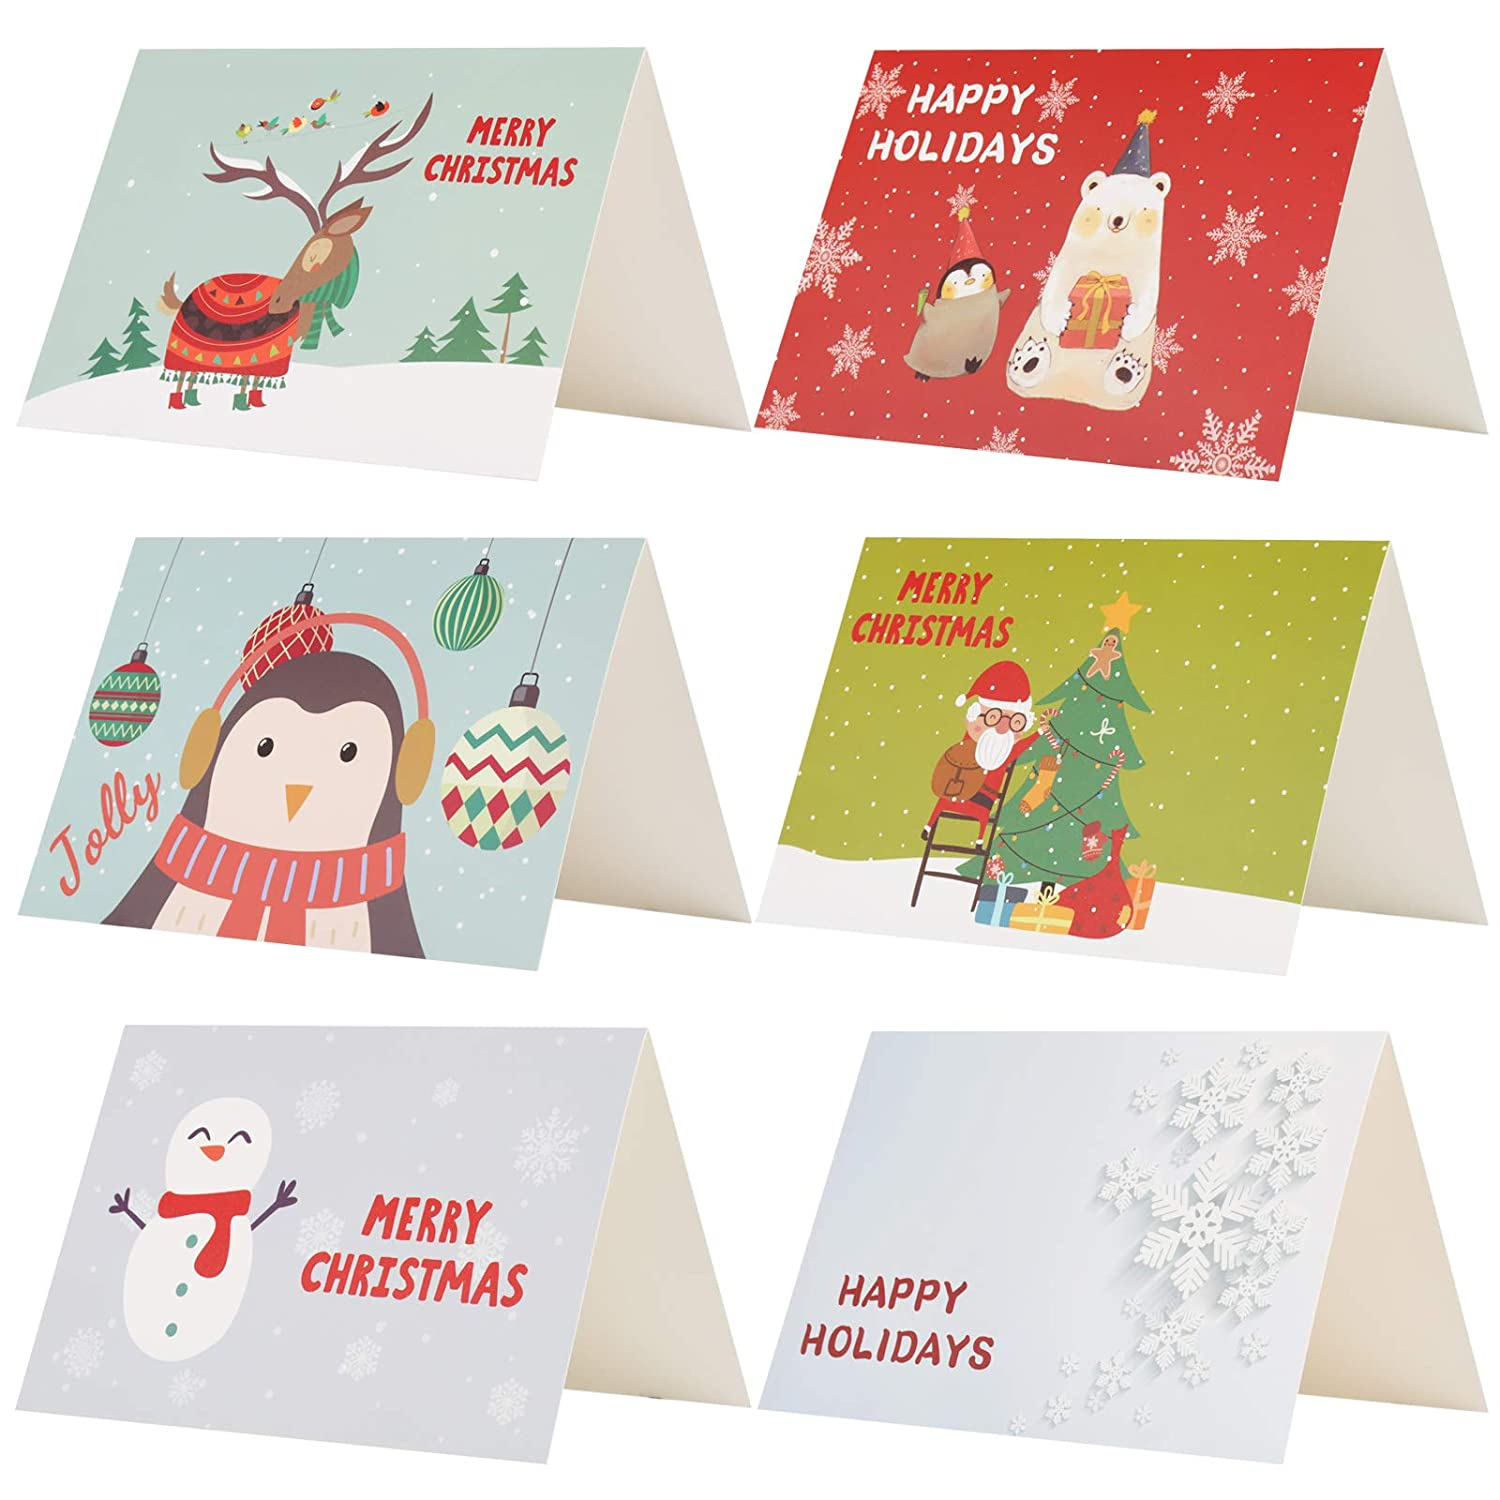 Kesoto Merry Christmas Greeting Cards - 24 Winter Holiday Xmas Greeting Cards, Envelopes and Stickers Included, 6 of Each Design, Blank Inside, 4 x 6 Inches, Cartoon